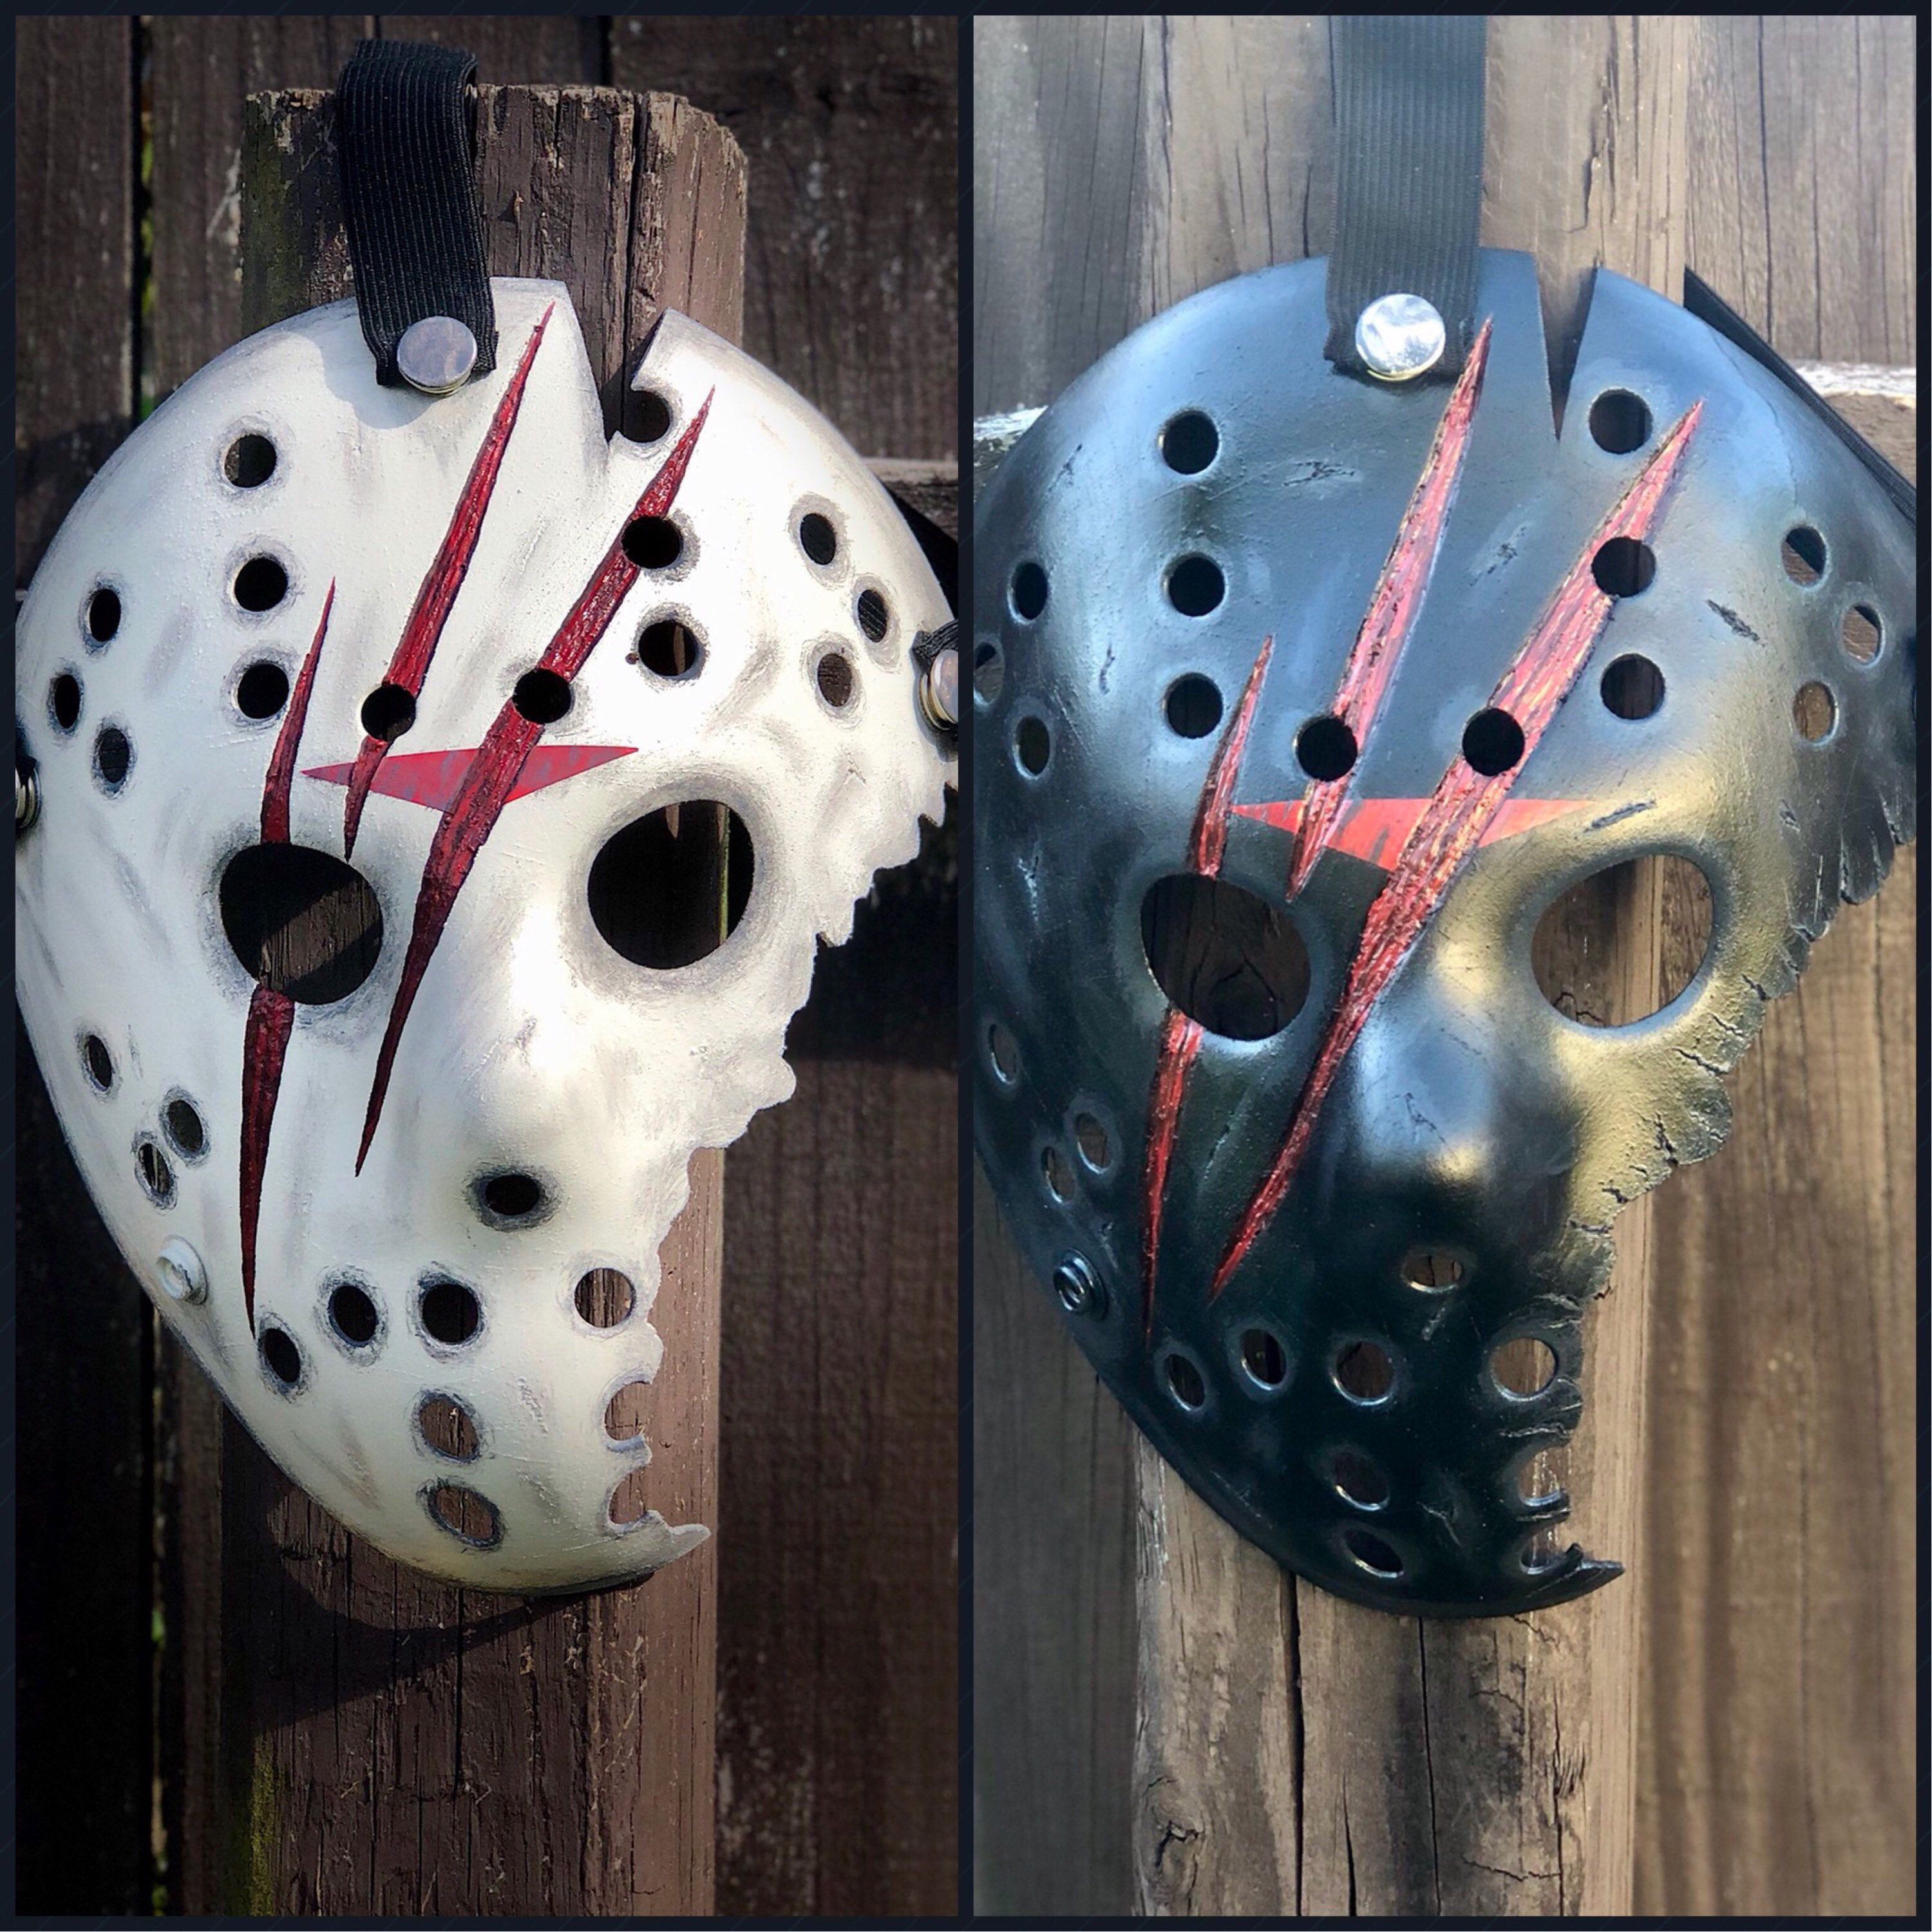 Jason Voorhees - Friday the 13th Movie Prop Replicas